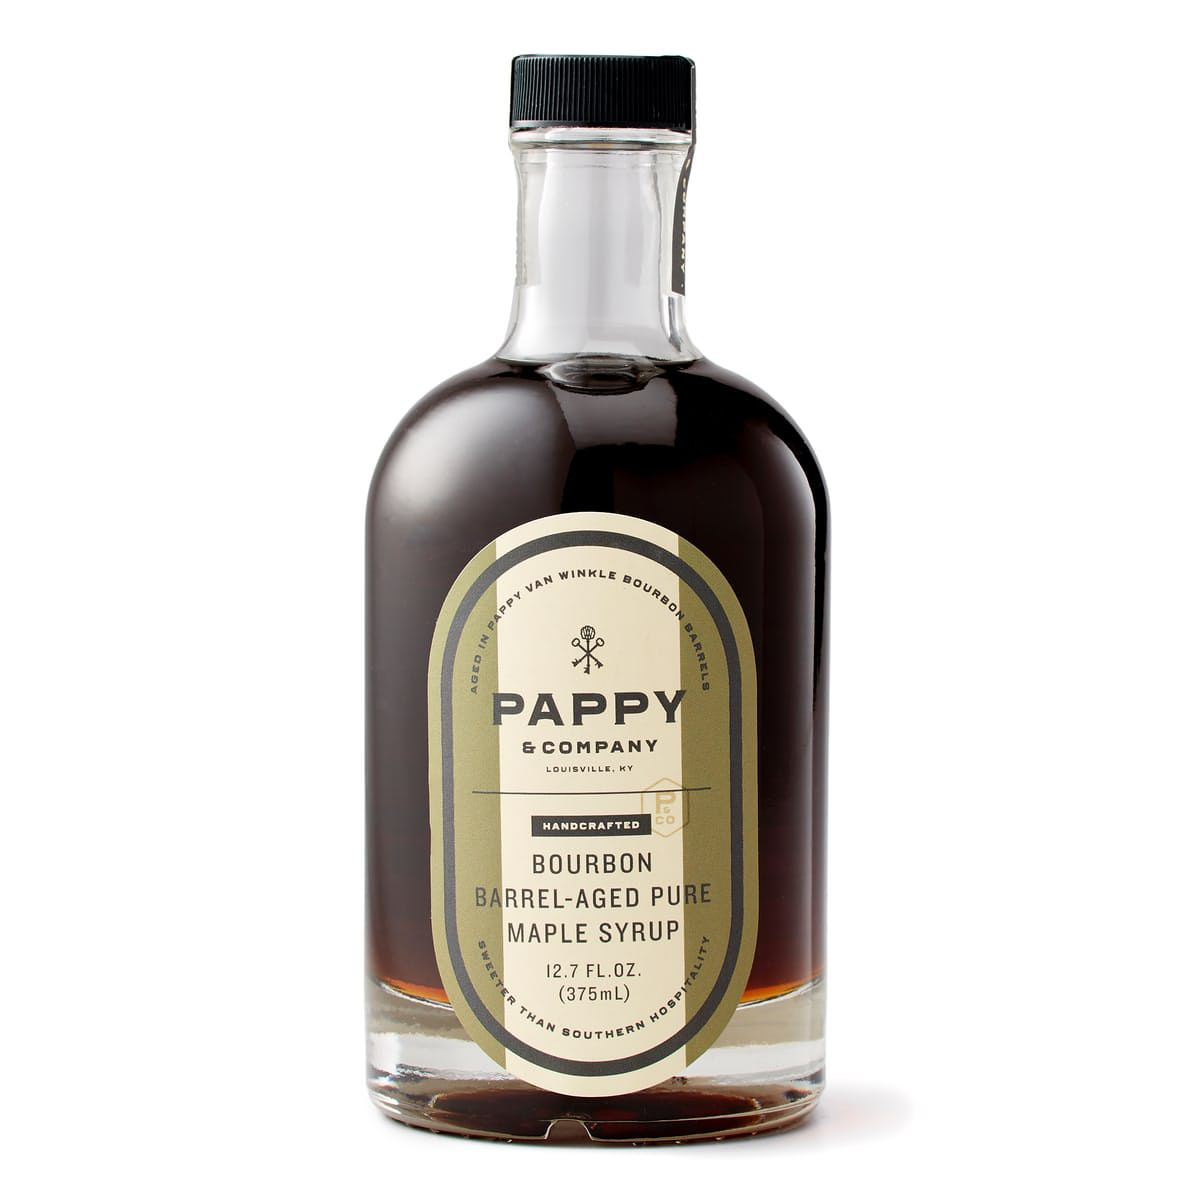 Pappy and Company's Barrel Aged Maple Syrup